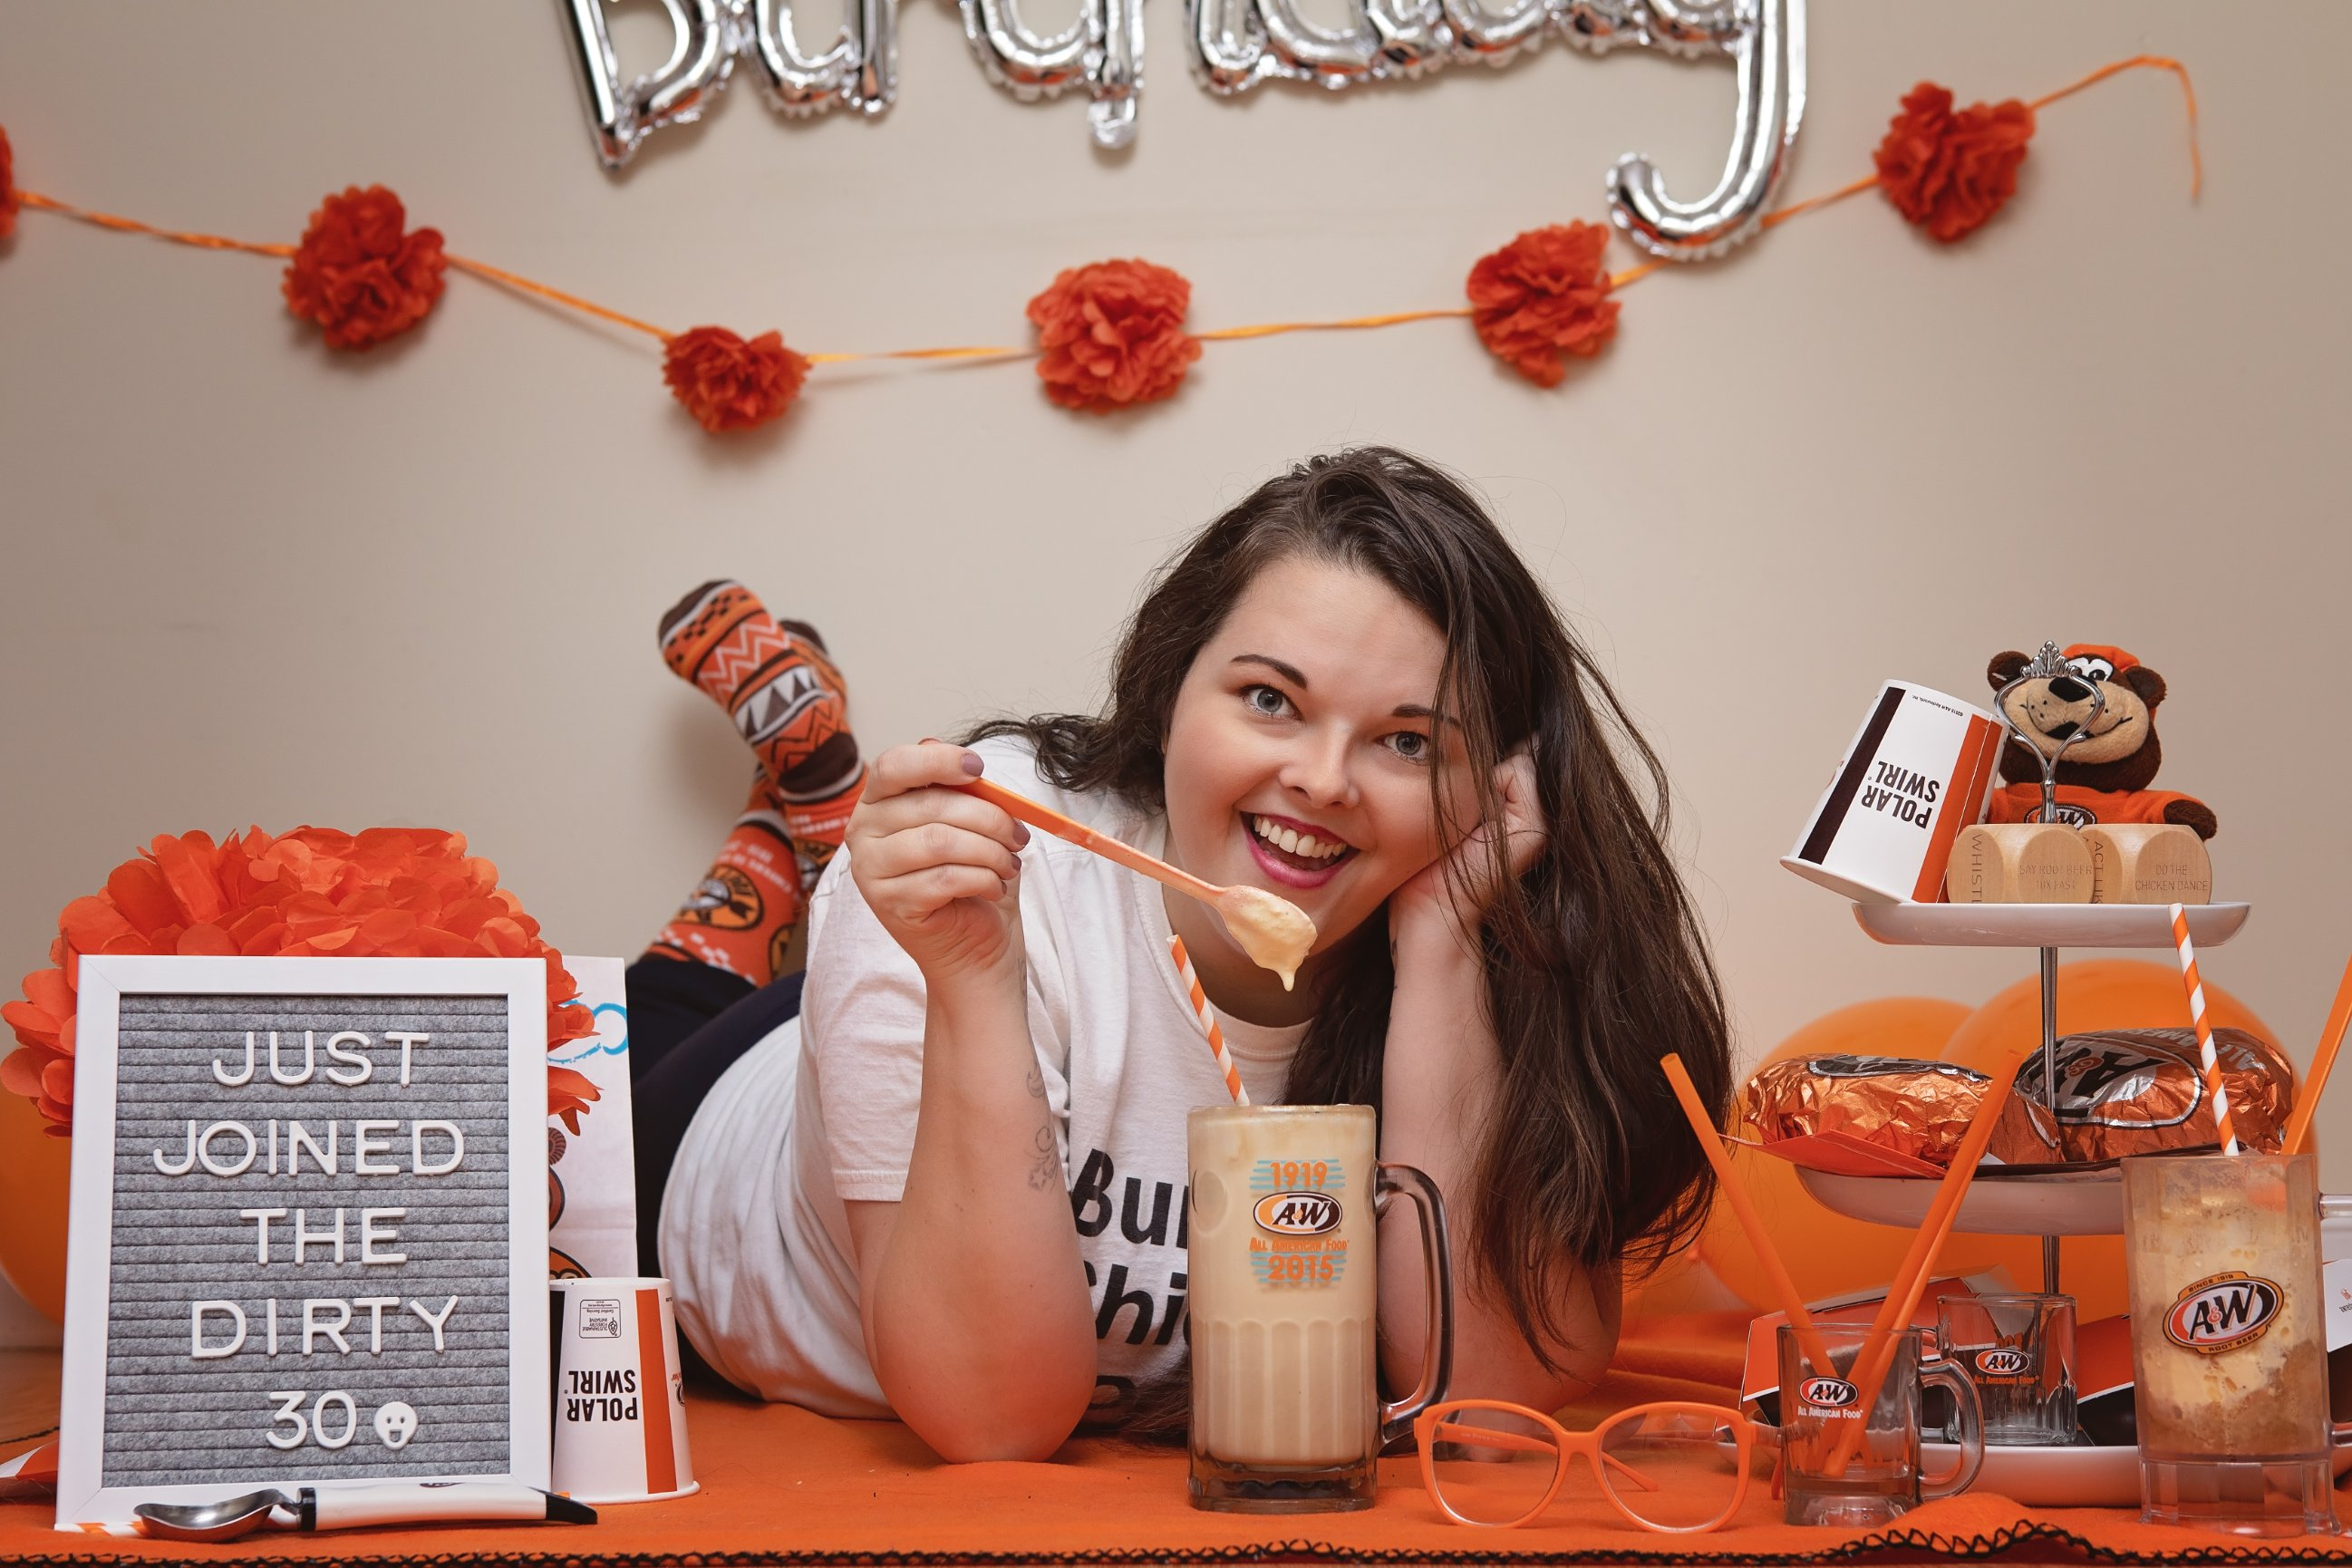 Briana with root beer float in A&W mug